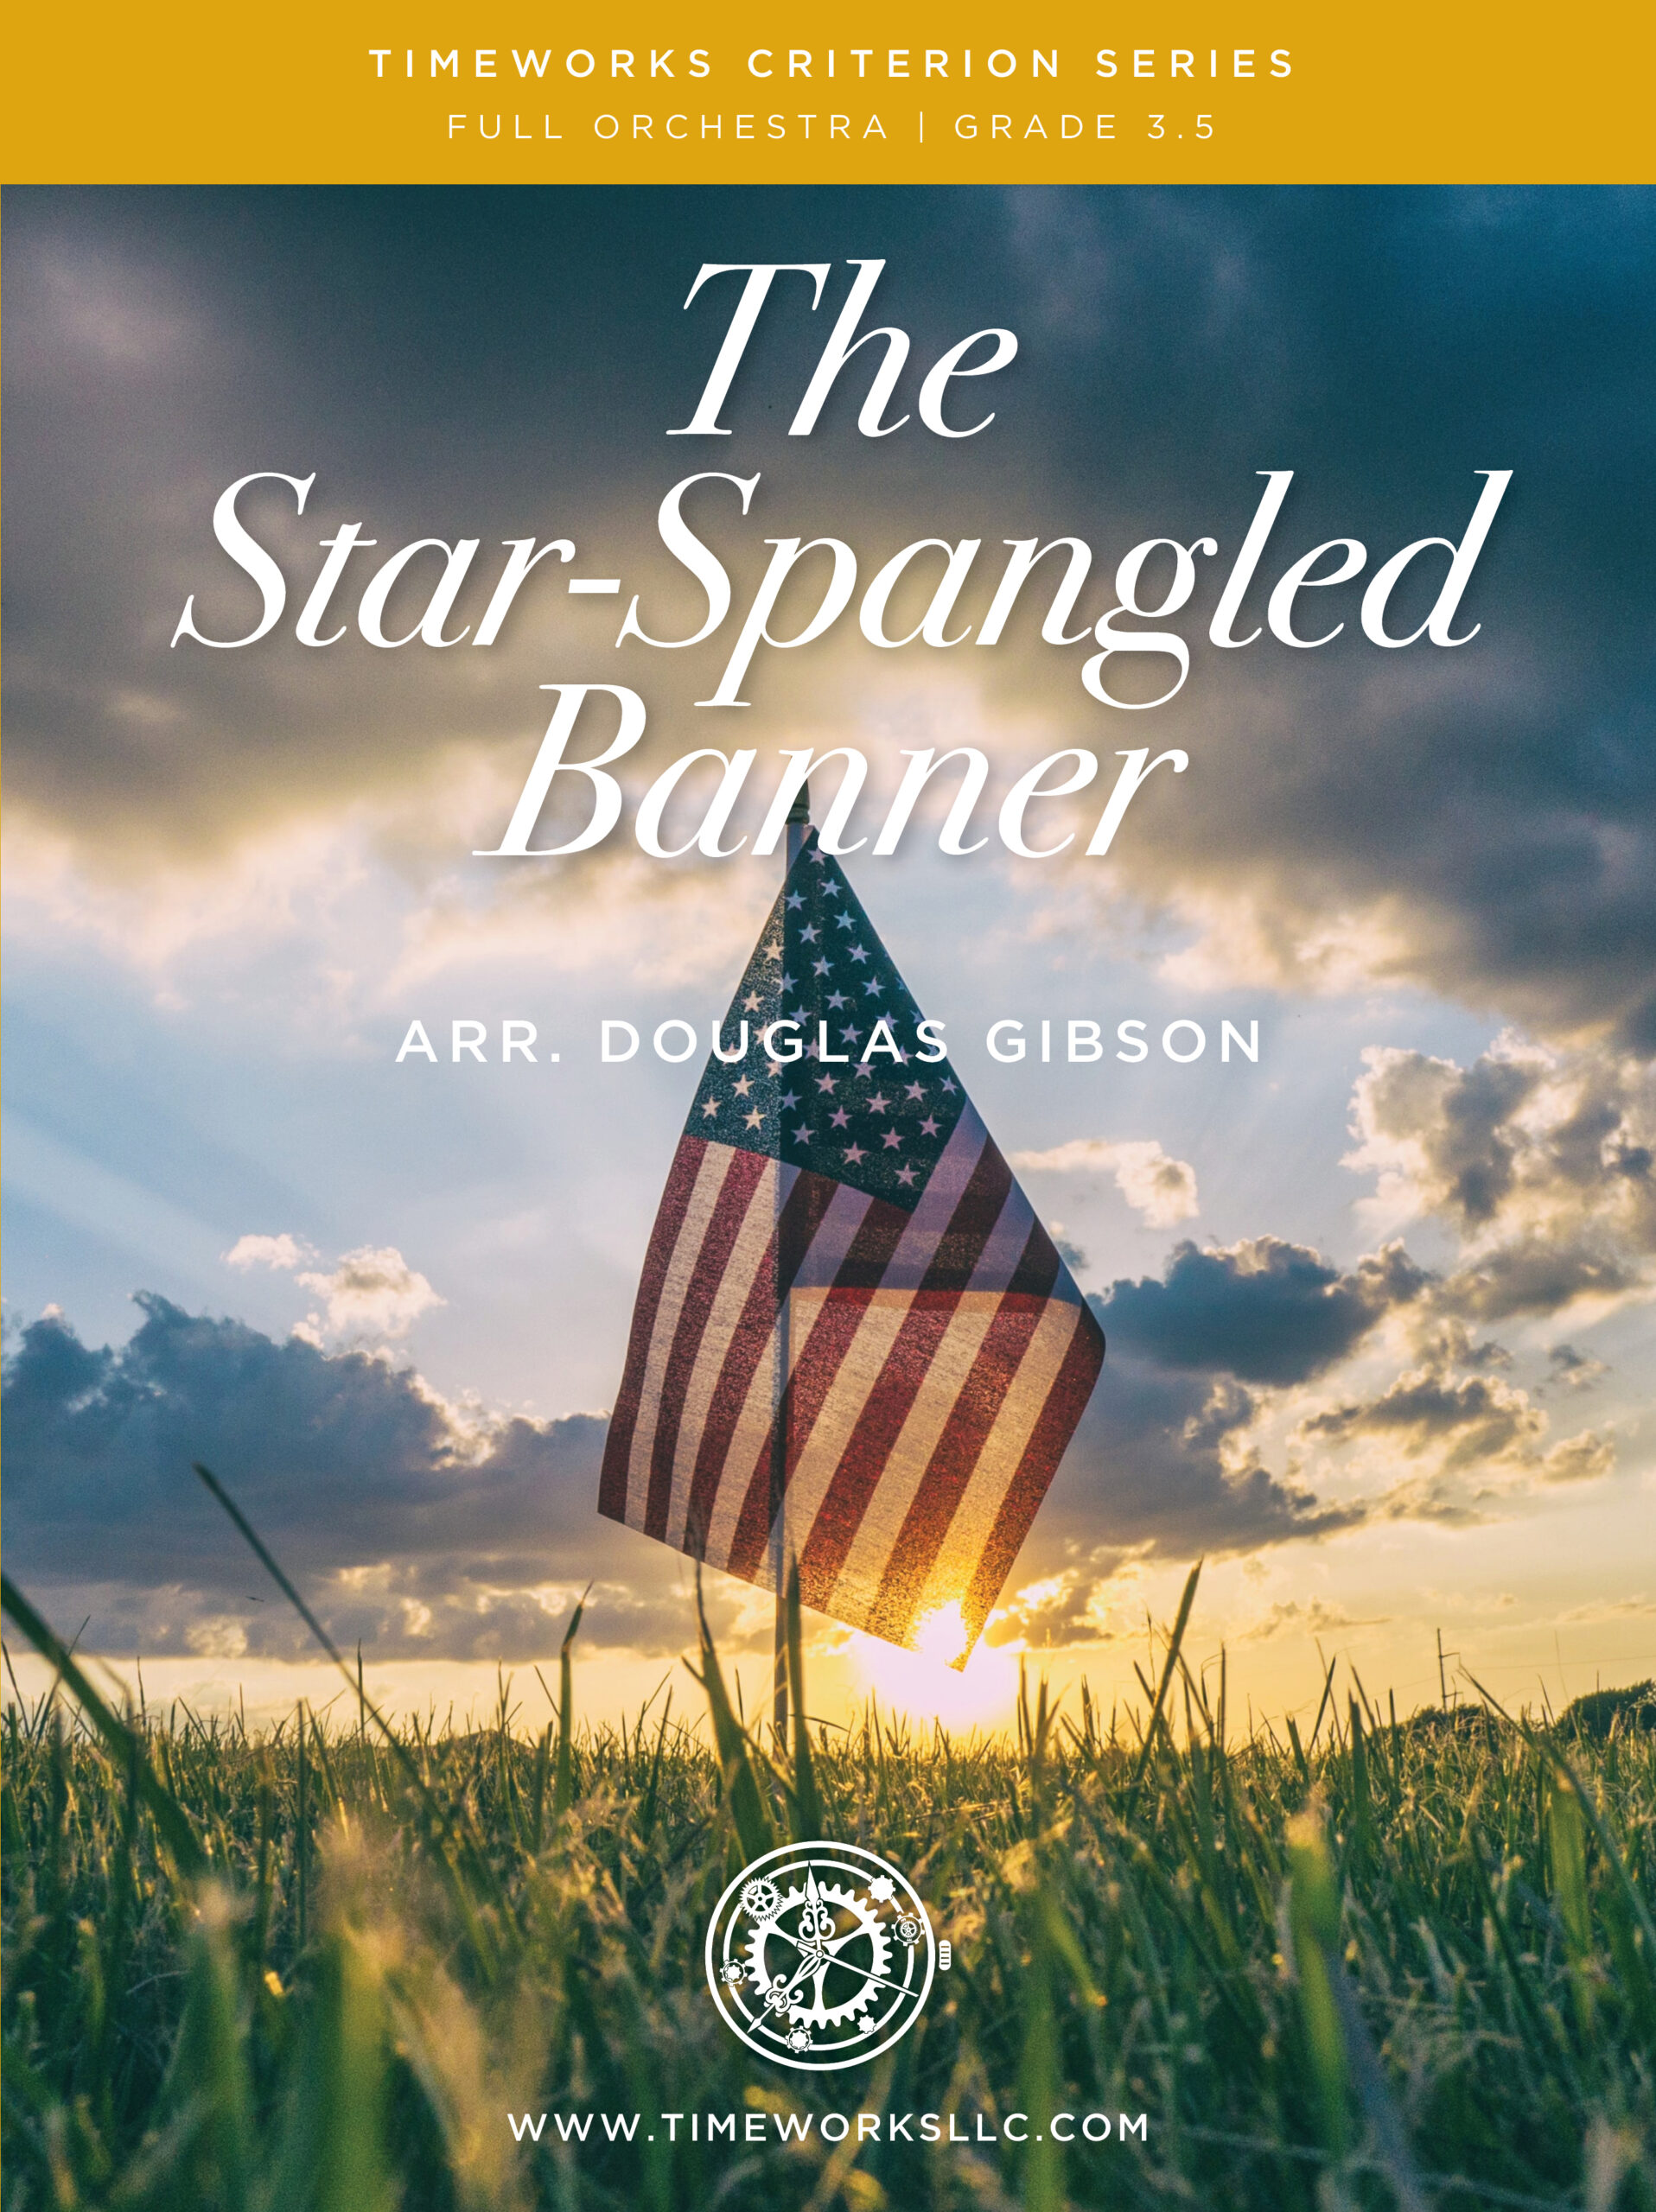 The Star-Spangled Banner Image